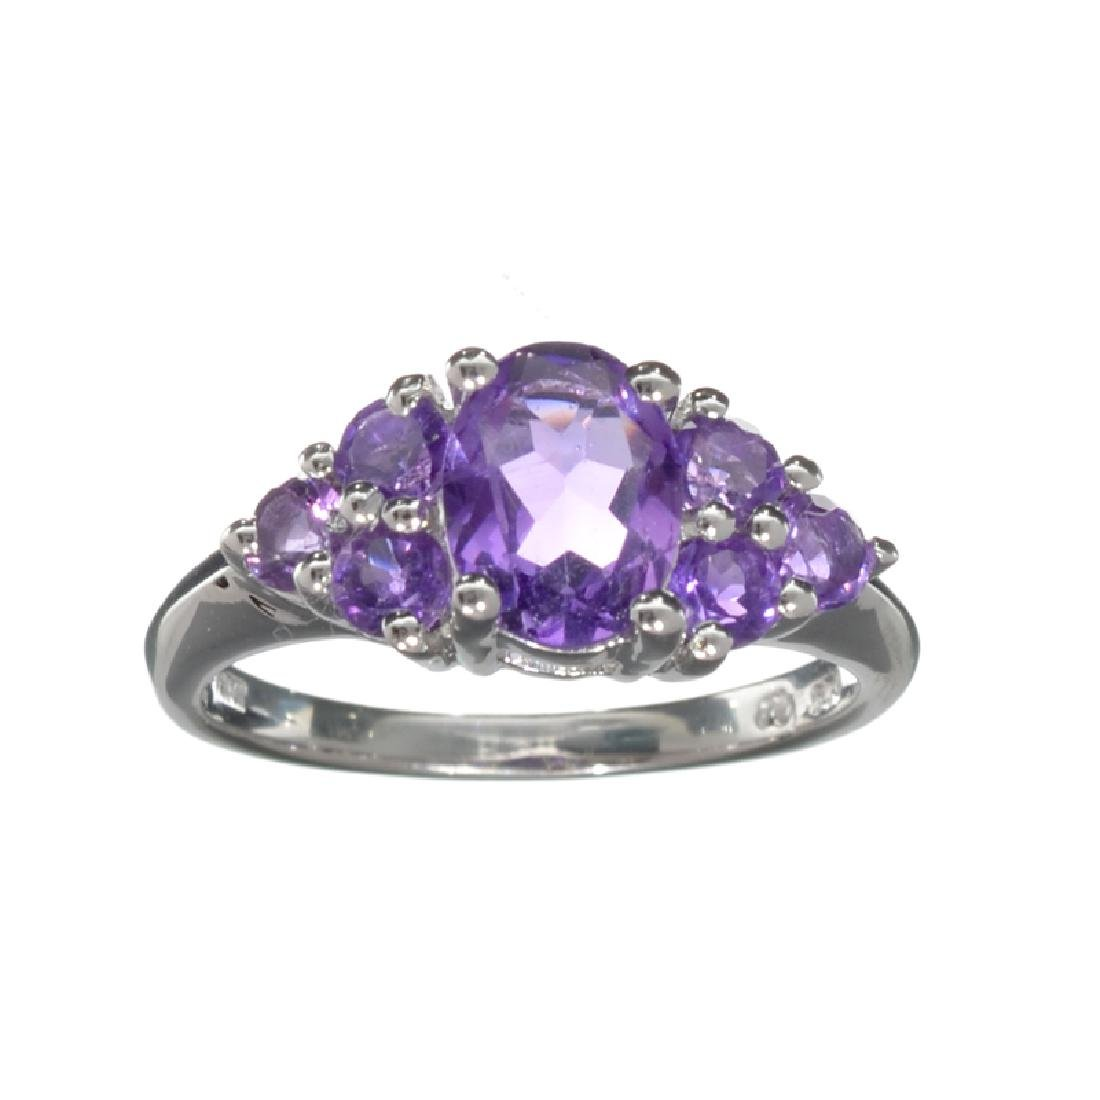 APP: 0.3k Fine Jewelry 1.80CT Oval Cut Amethyst And